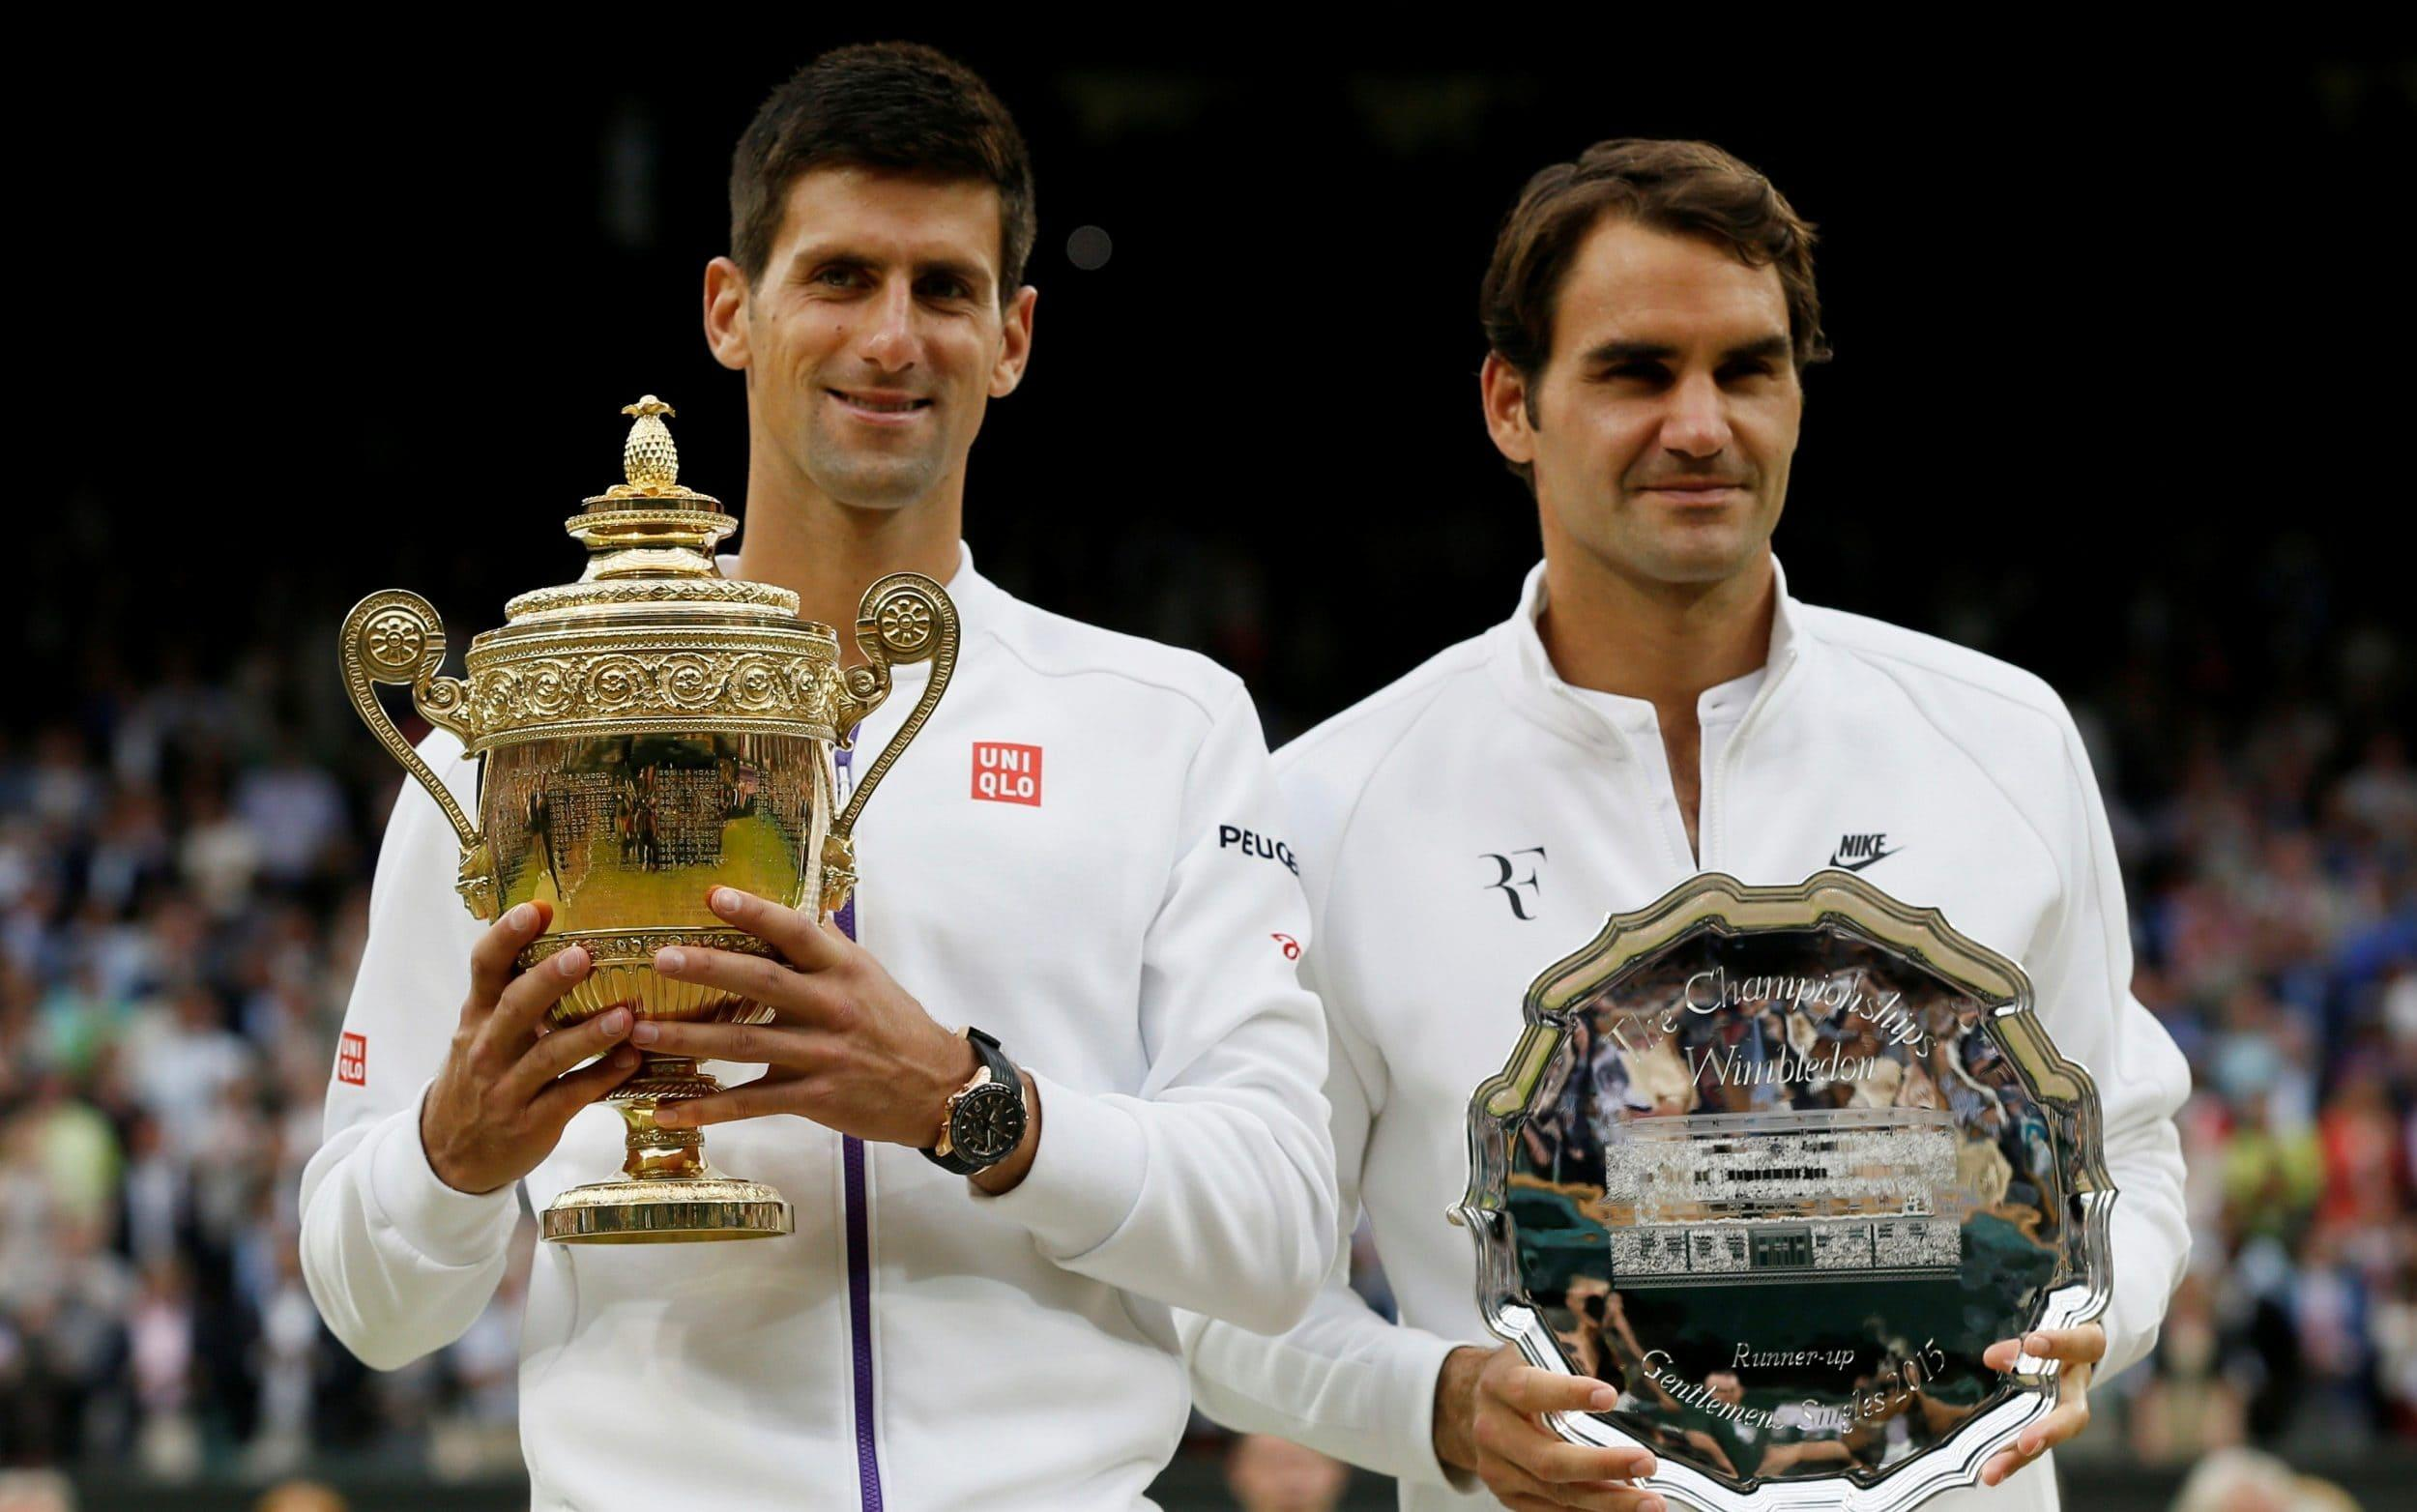 Roger Federer yet to find a way to beating Enigma machine that is Novak Djokovic